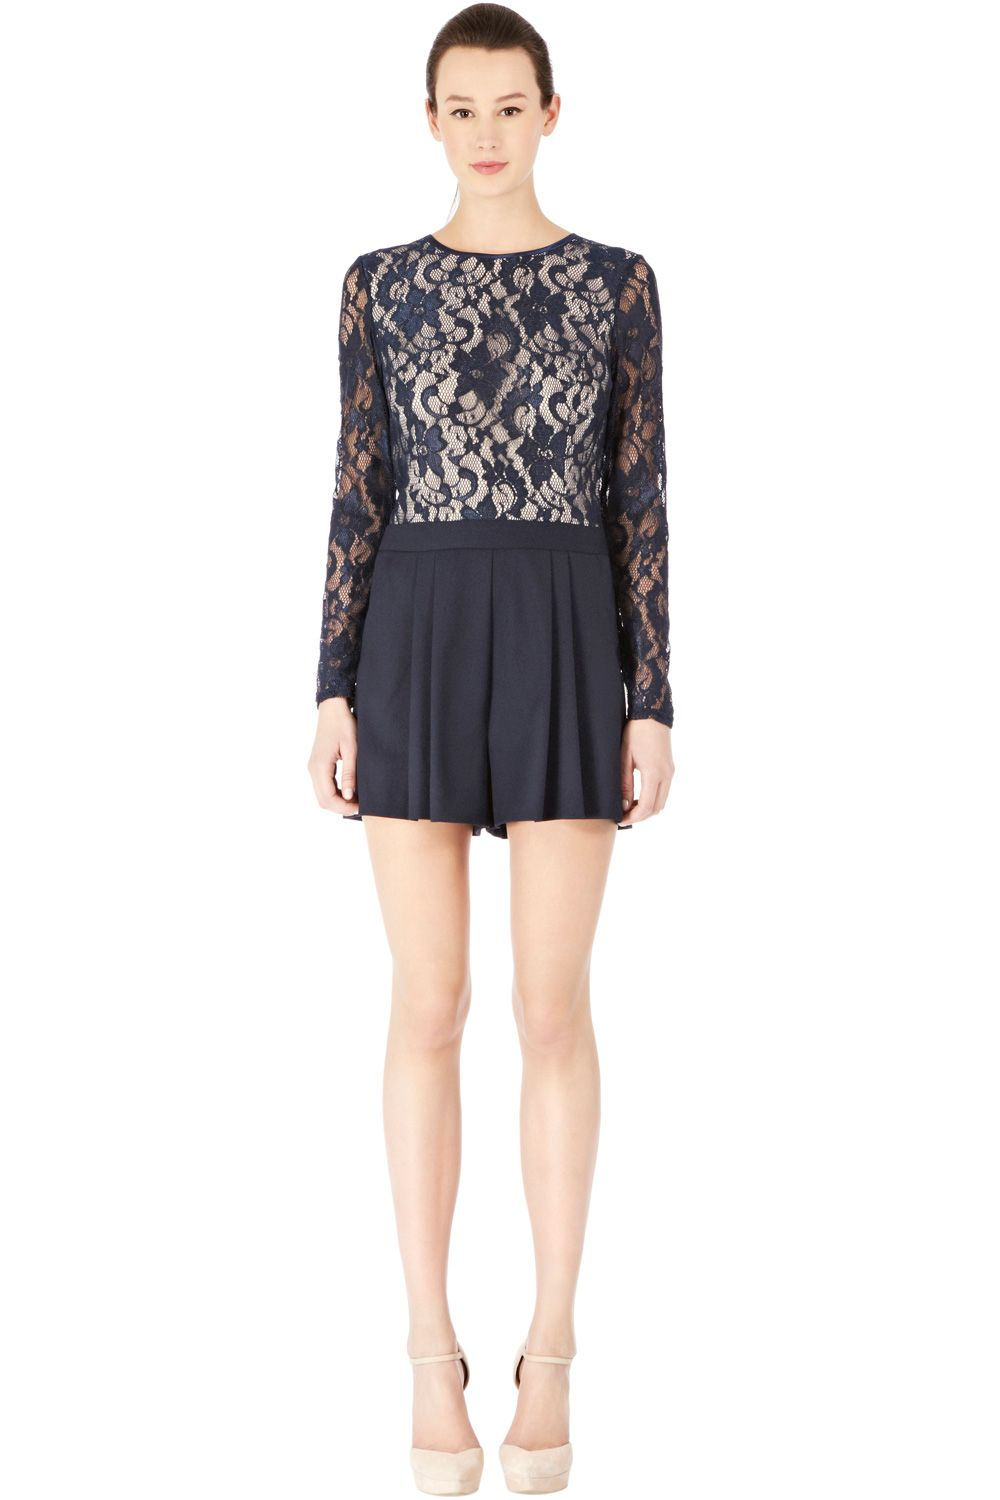 Warehouse LACE TOP ROMPER